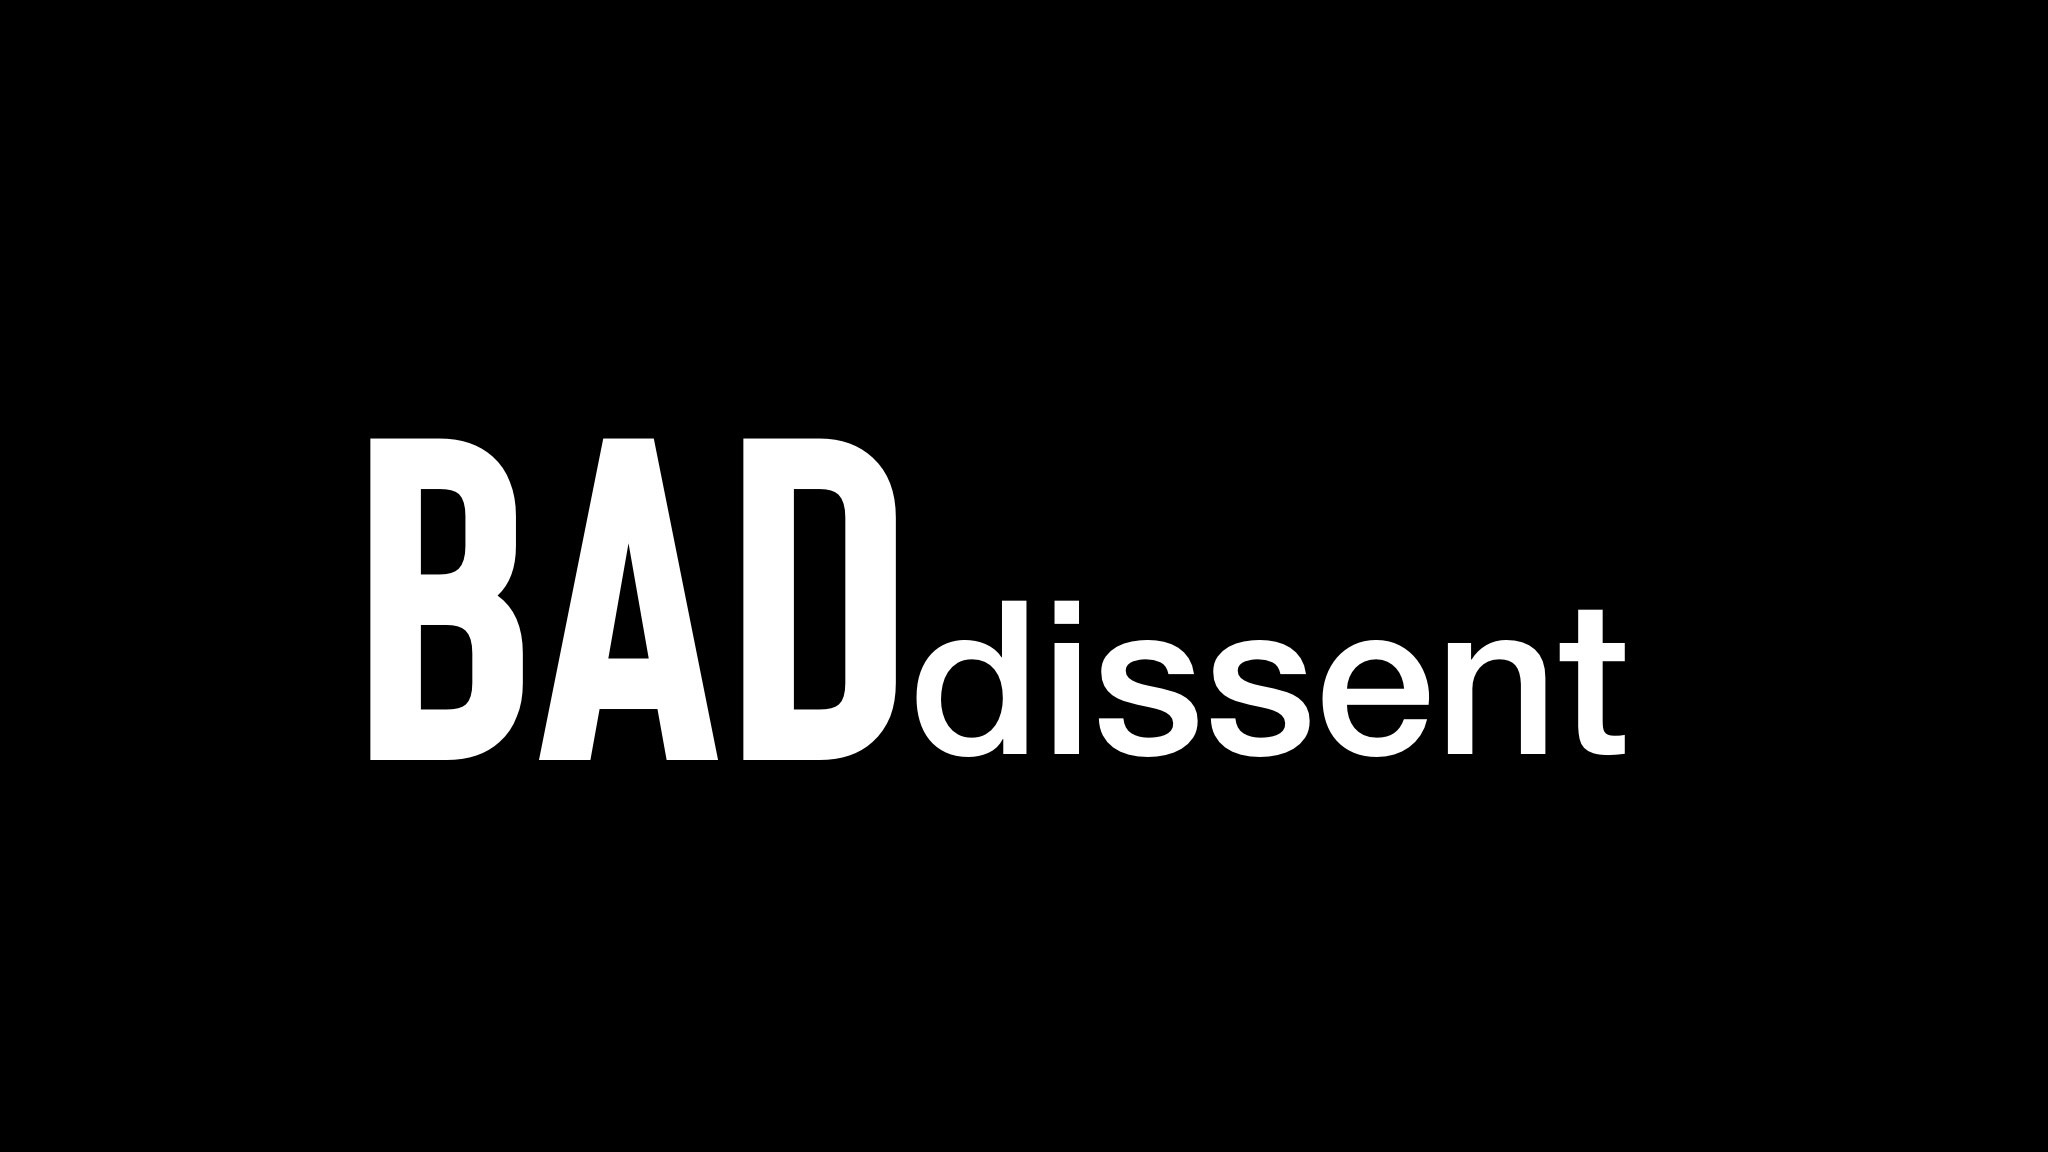 Bad Dissent — large text on black background